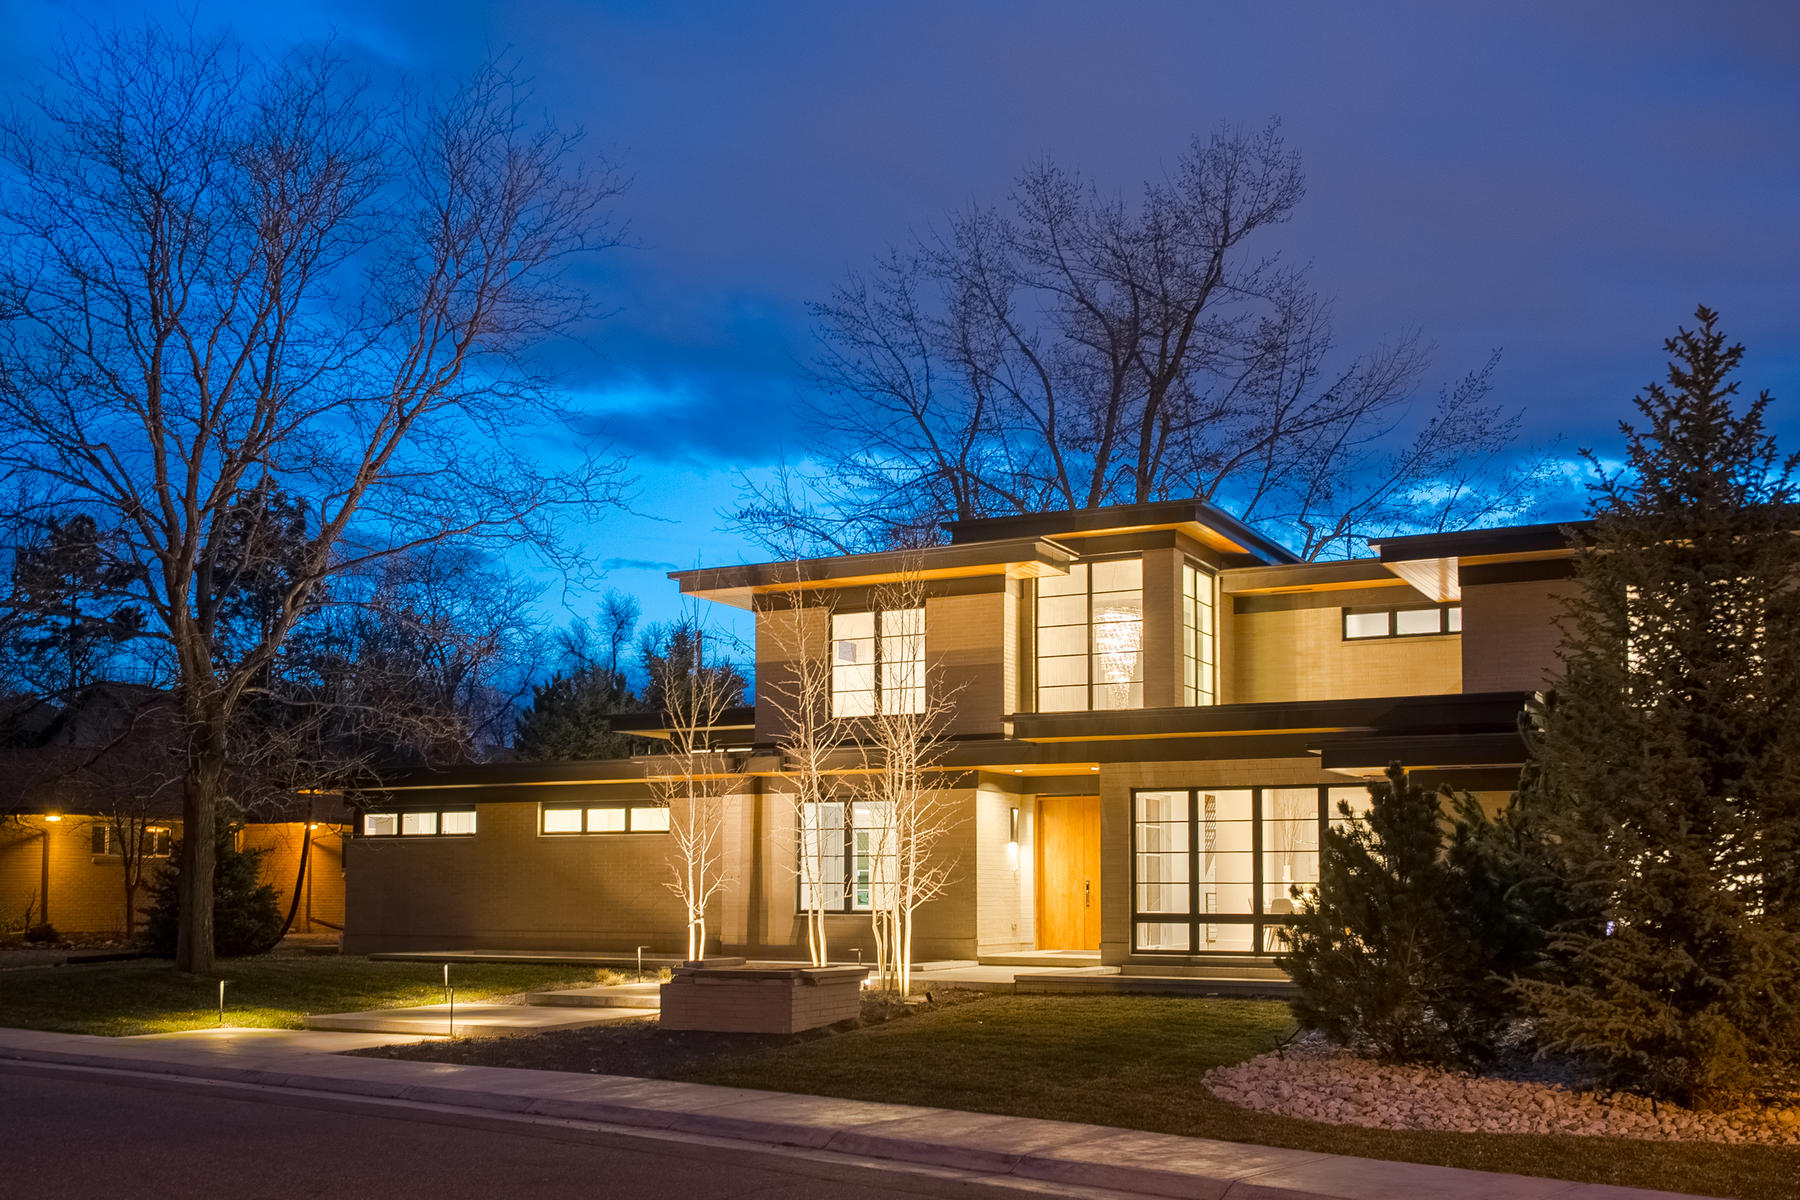 Additional photo for property listing at The Finest Ultra-Mid-Century New Construction 701 South Jackson Street Denver, Colorado 80209 United States